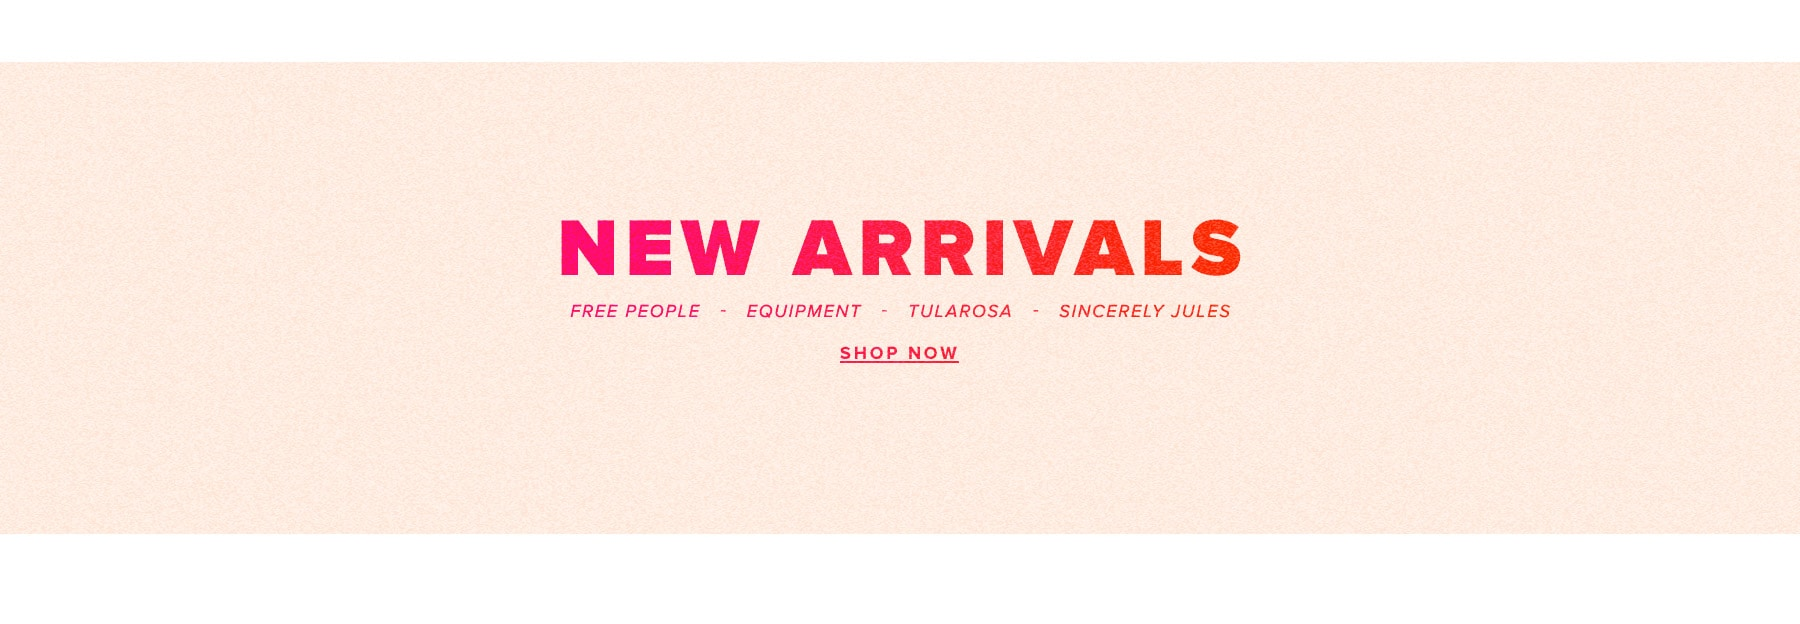 New Arrivals. Free People, Equipment, Tularosa, Sincerely Jules. Shop Now